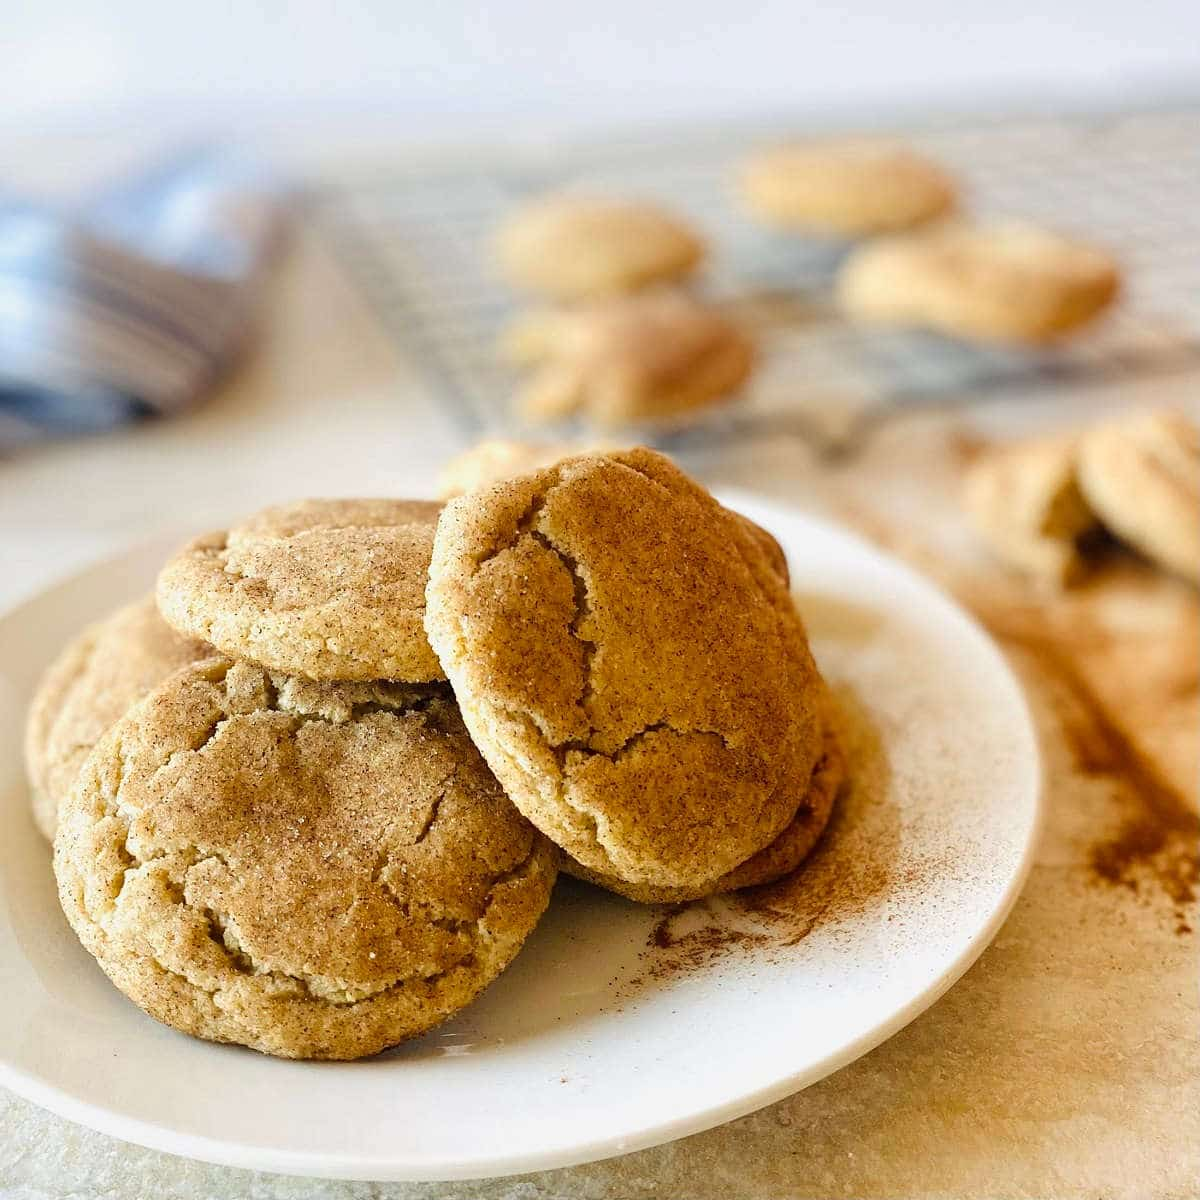 easy snickerdoodle recipe without cream of tartar on white plate with tray of snickerdoodle cookies in background